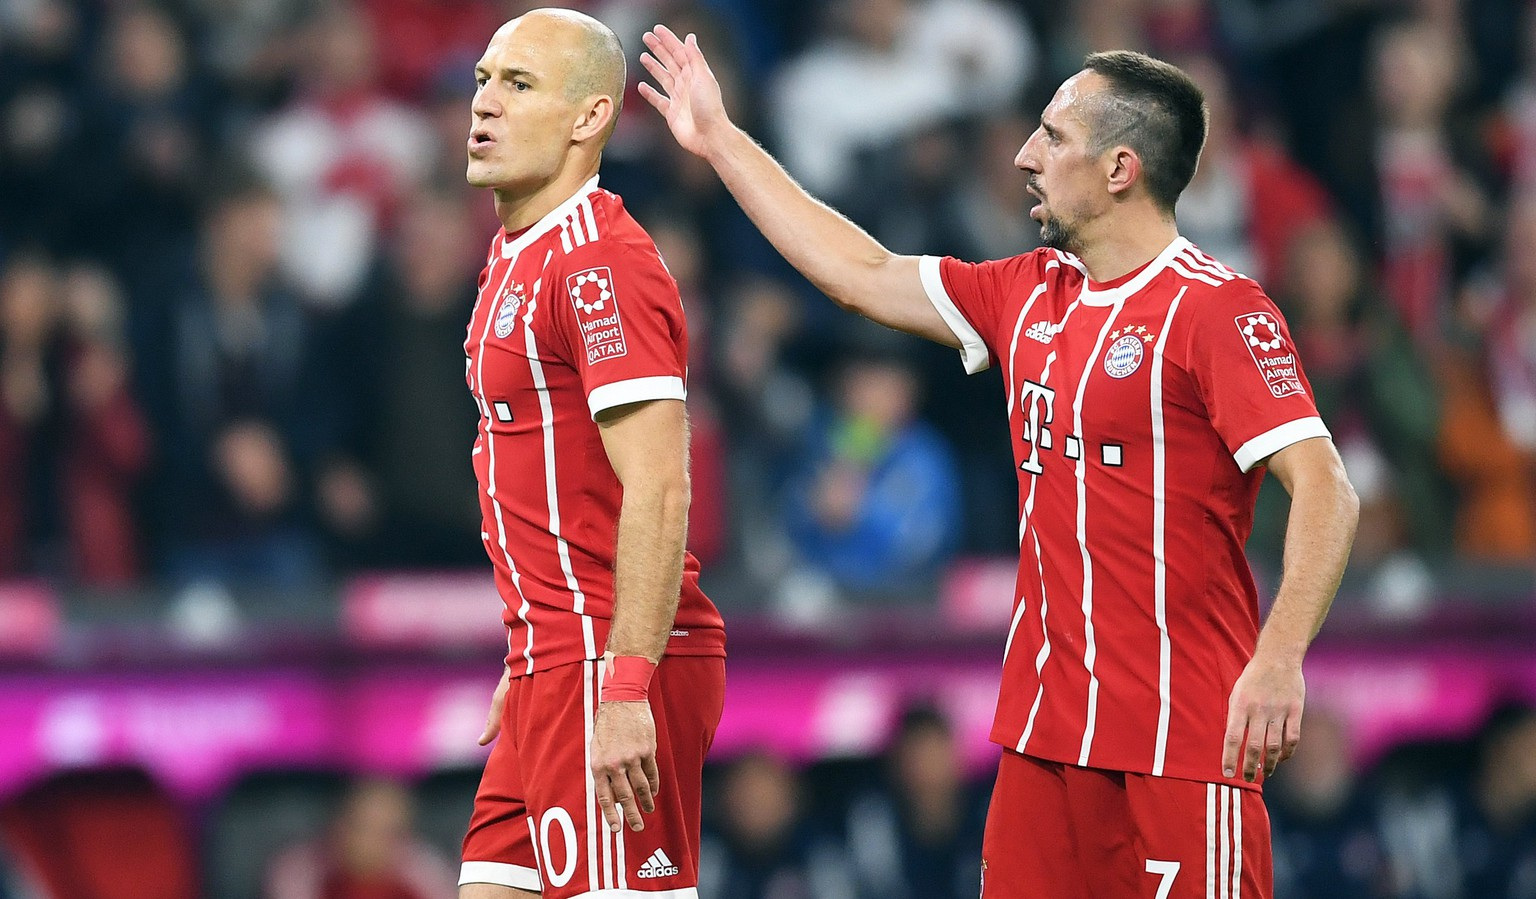 epa06220753 Bayern Munich's Arjen Robben (L) and Franck Ribery (R) react during the German Bundesliga soccer match between FC Bayern Munich and VfL Wolfsburg, in Munich, Germany, 22 September 2017.  EPA/ANDREAS SCHAAD (EMBARGO CONDITIONS - ATTENTION: Due to the accreditation guidelines, the DFL only permits the publication and utilisation of up to 15 pictures per match on the internet and in online media during the match.)